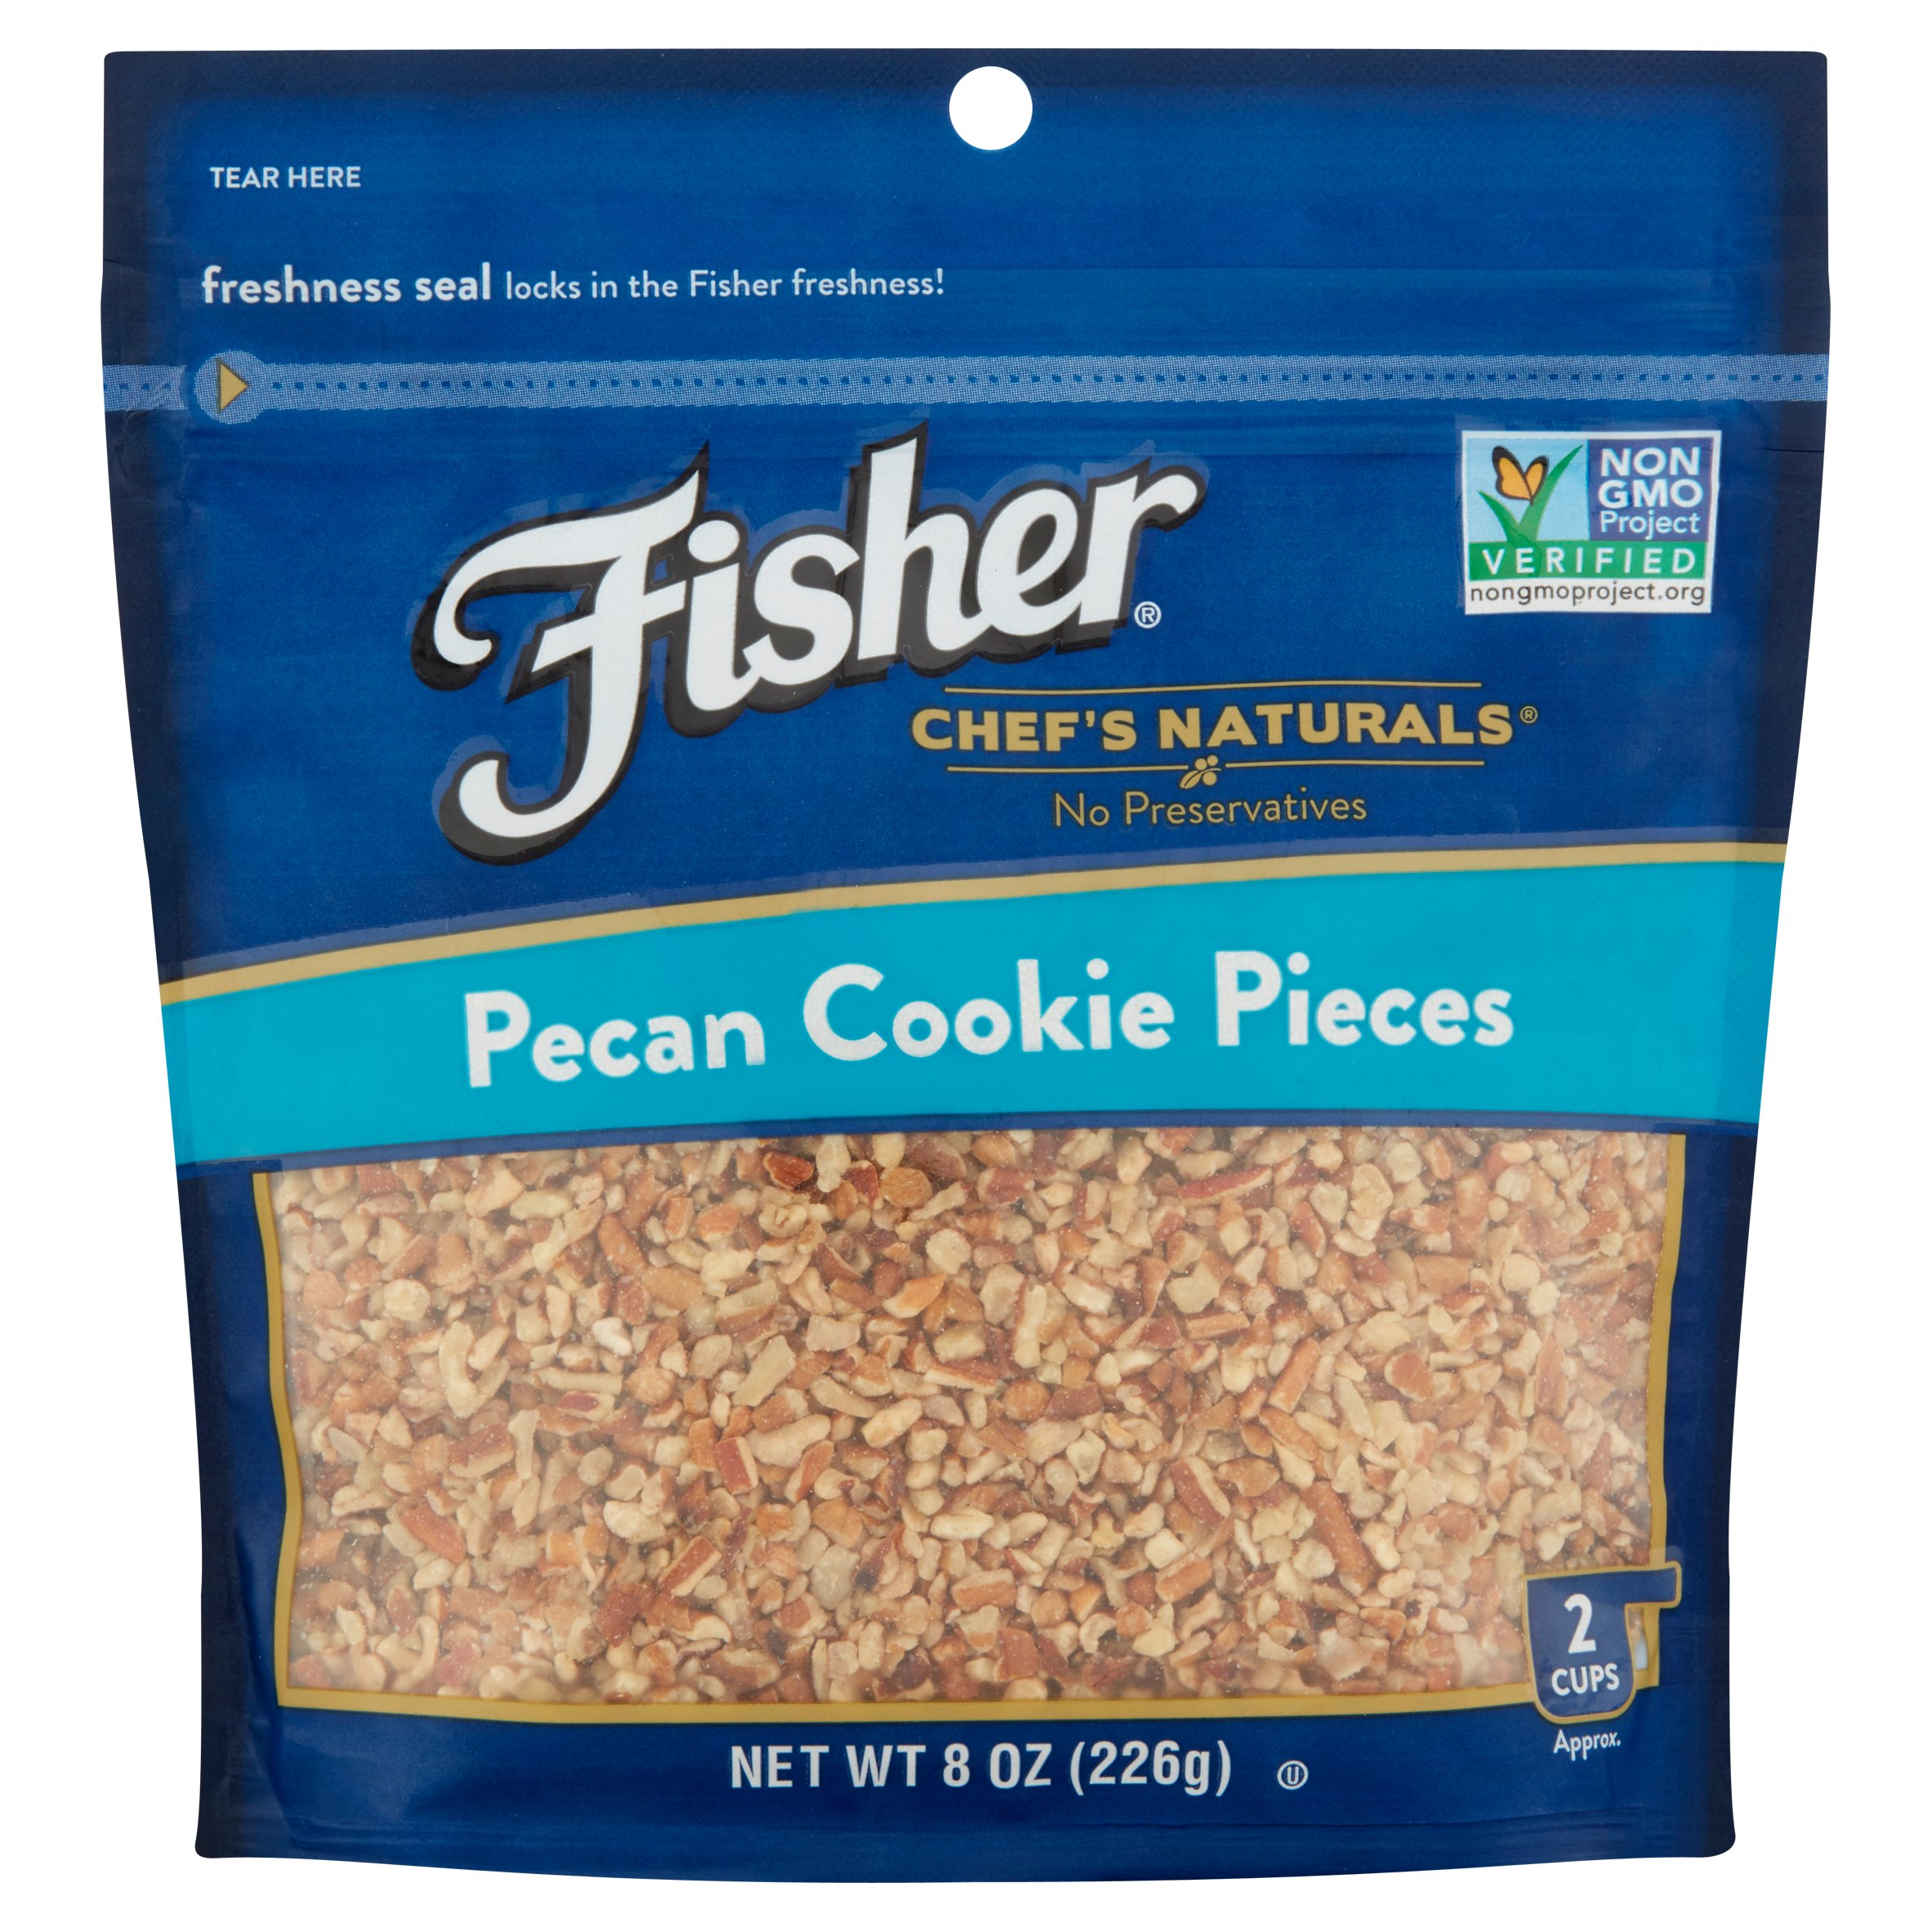 Fisher Chef's Naturals Pecan Cookie Pieces, 8 oz by John B. Sanfilippo & Son, Inc.